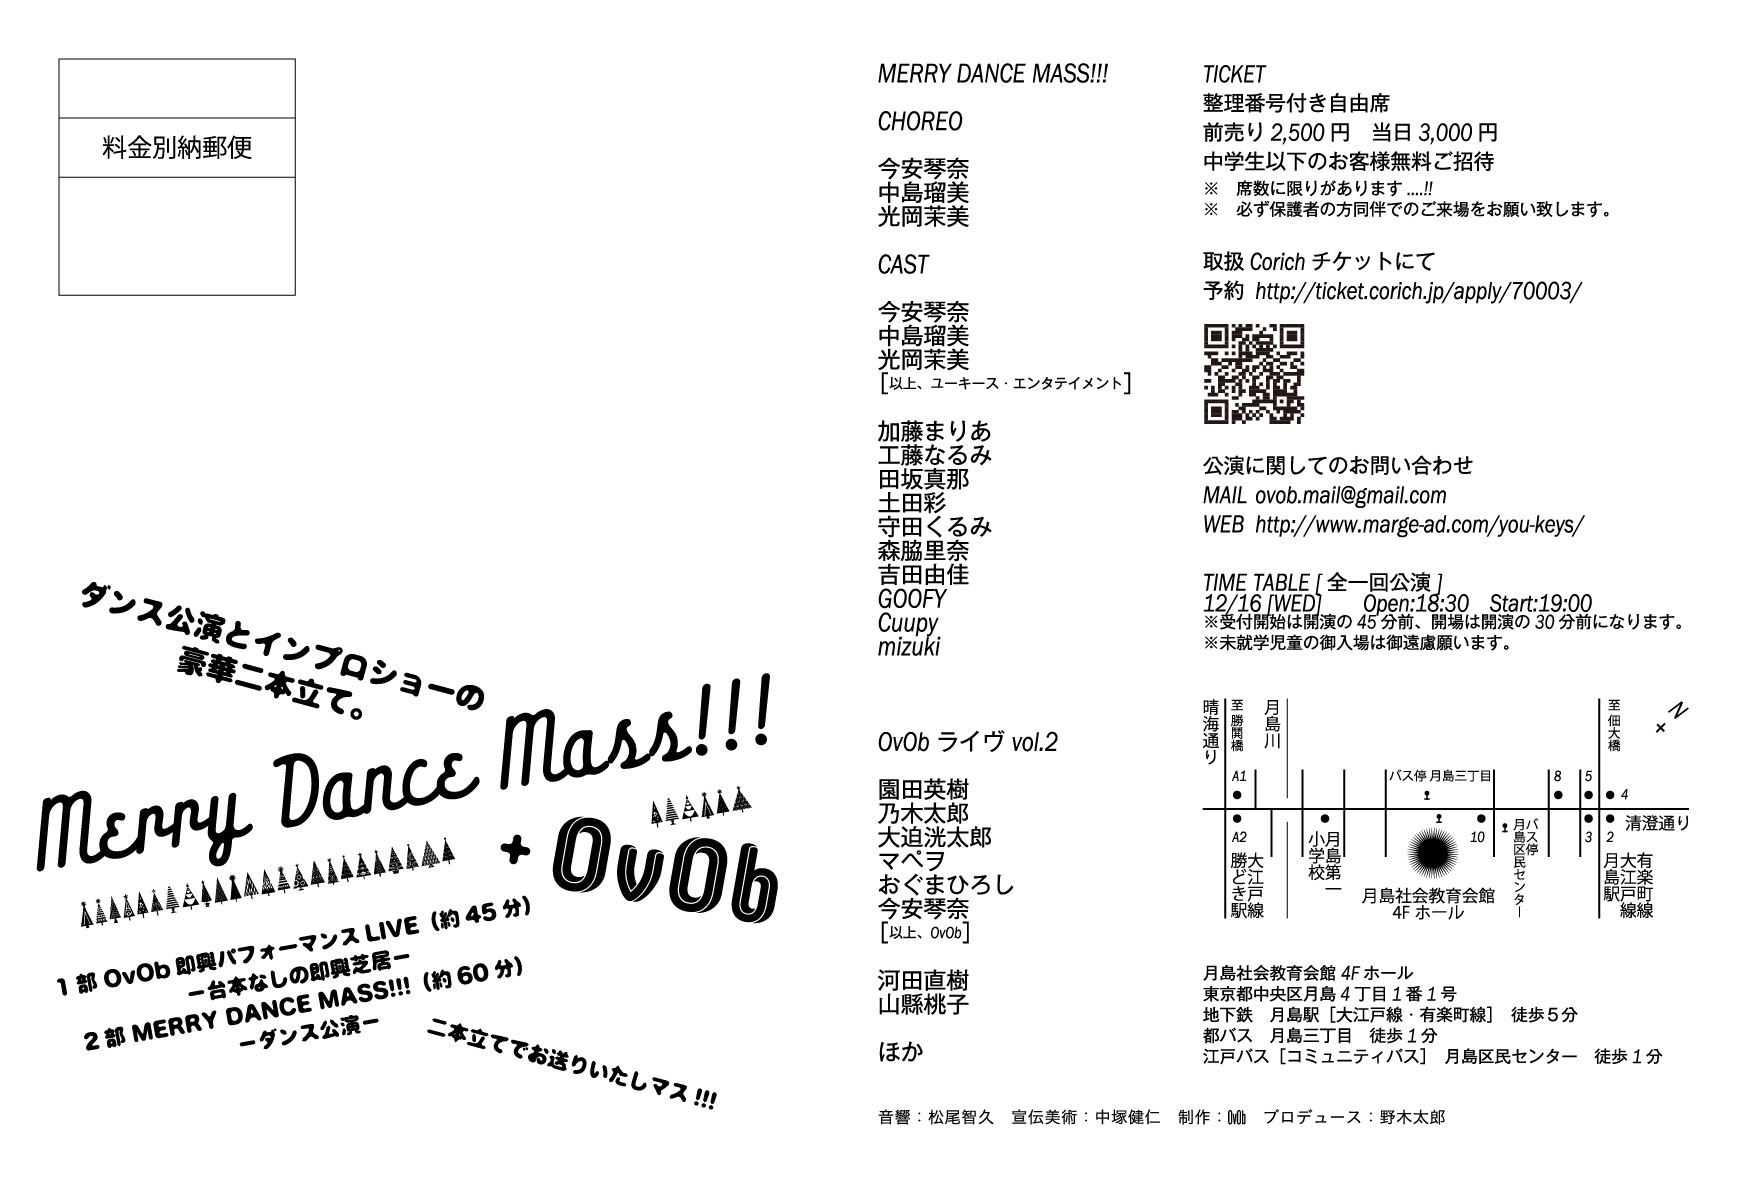 MERRY DANCE MASS!!! + OvOb裏